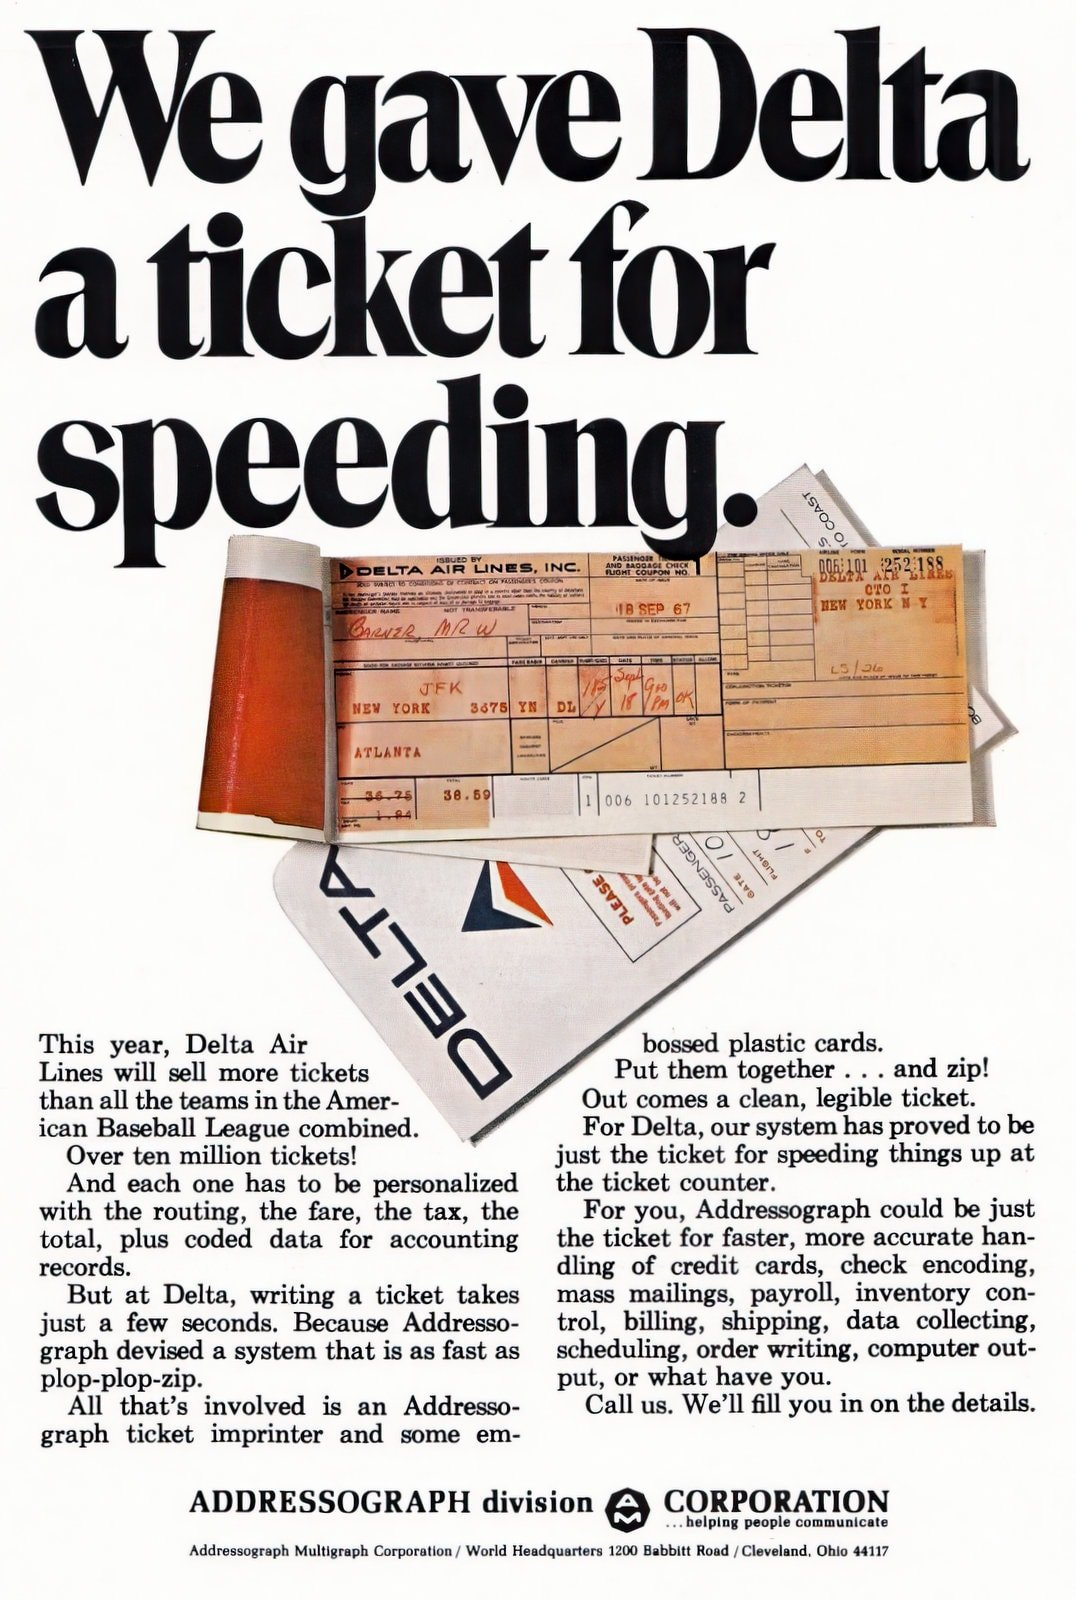 Vintage Delta Airlines ticket with red carbon paper (1969)